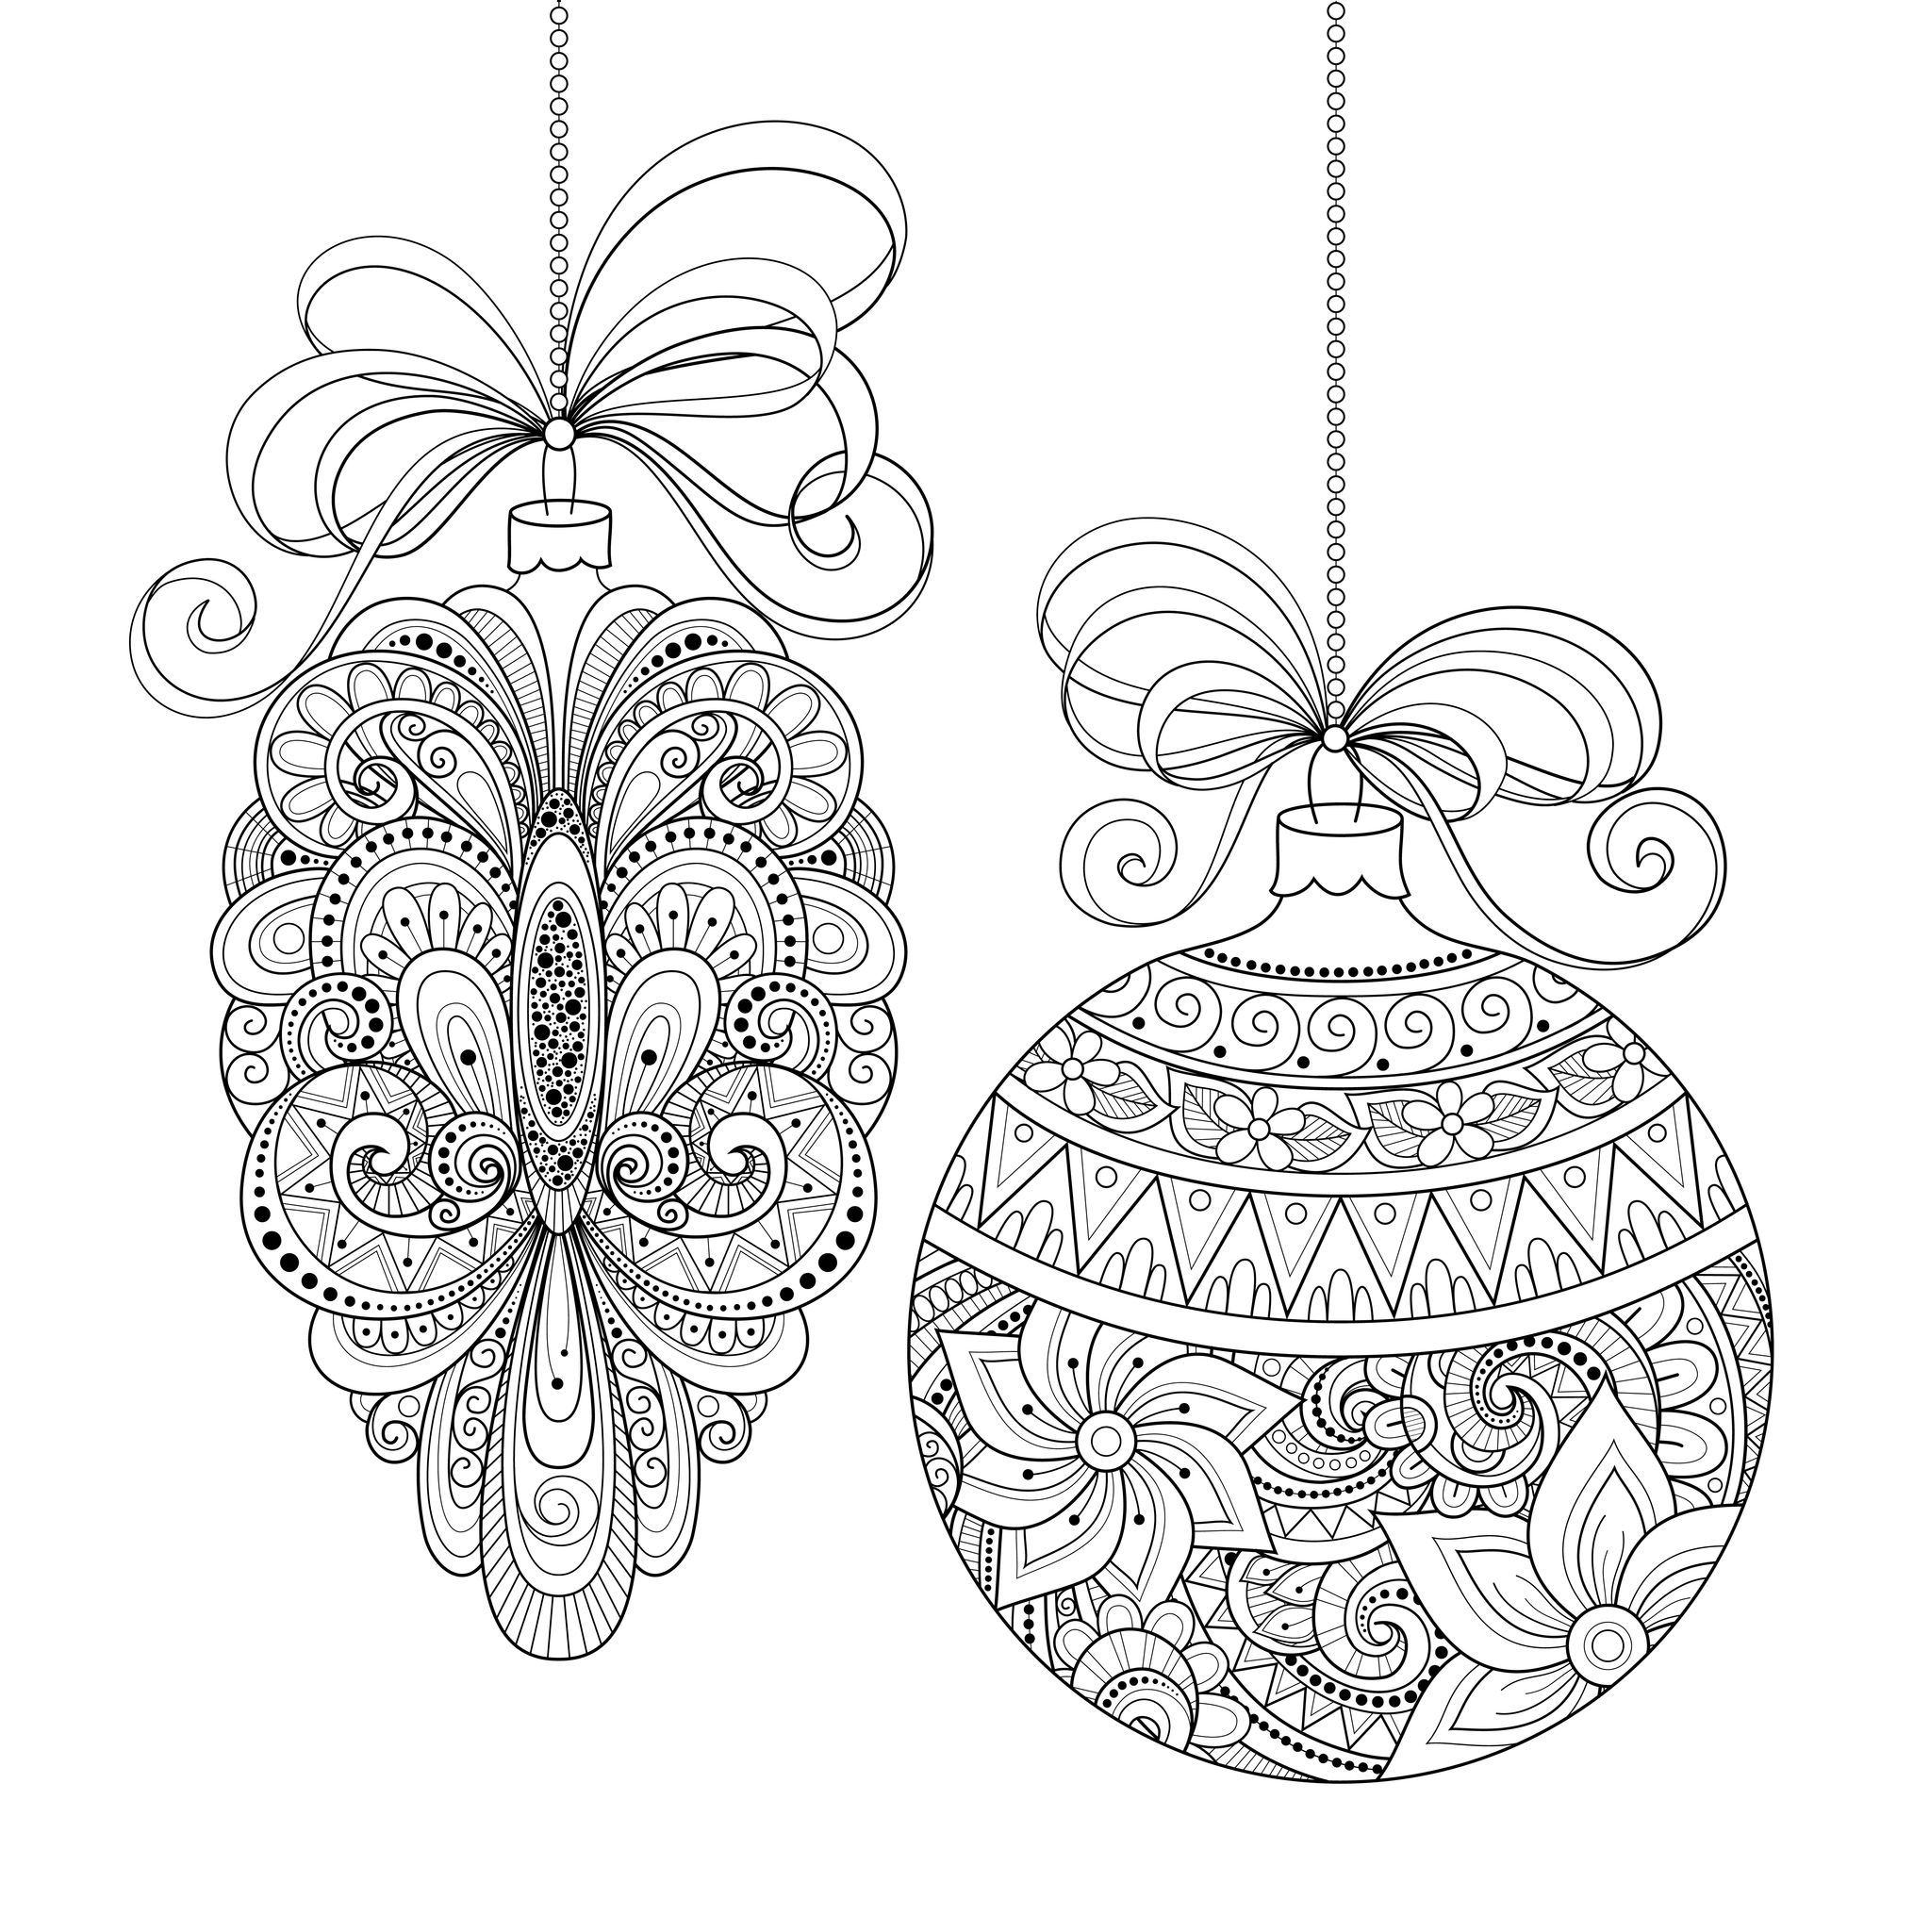 christmas ornaments use this coloring page to make your own greeting cards - Make Coloring Pages